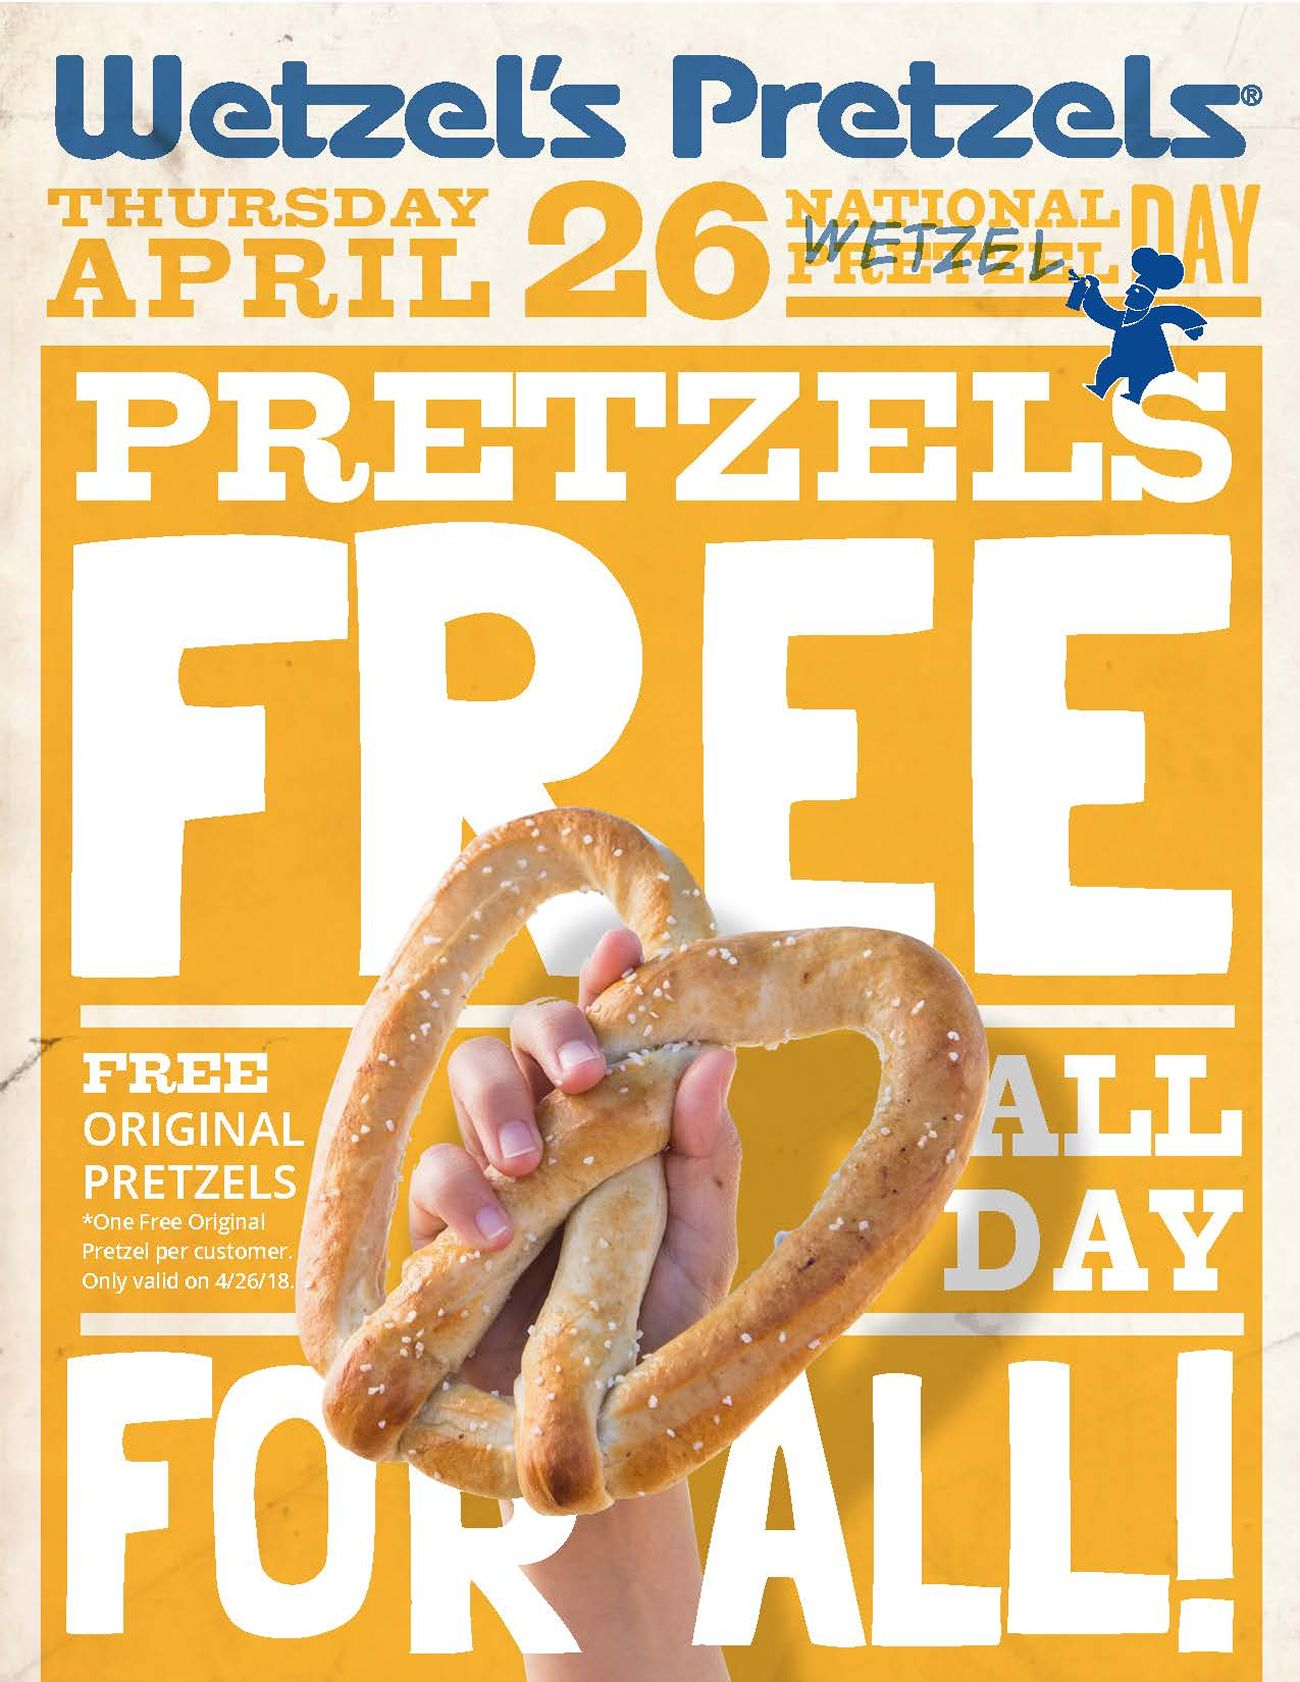 Wetzel's Pretzels Celebrates Fourth Annual National Wetzel Day